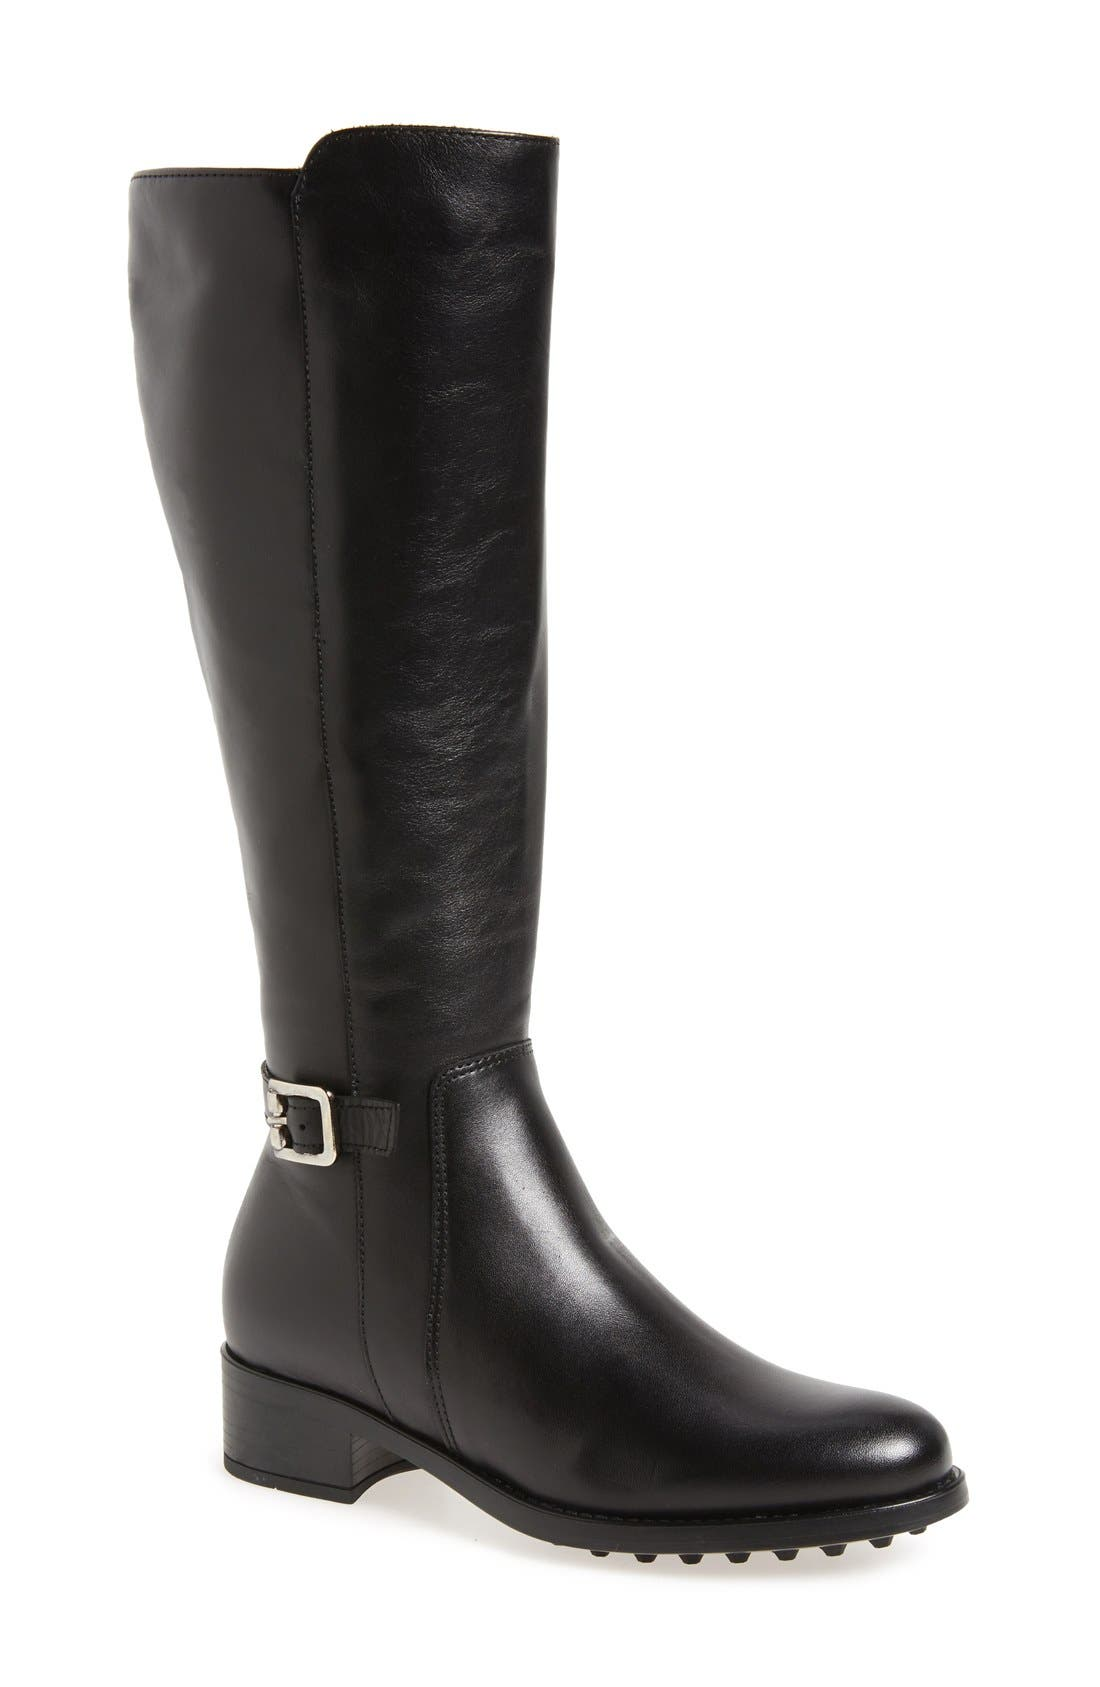 Main Image - La Canadienne Silvana Waterproof Riding Boot (Women)